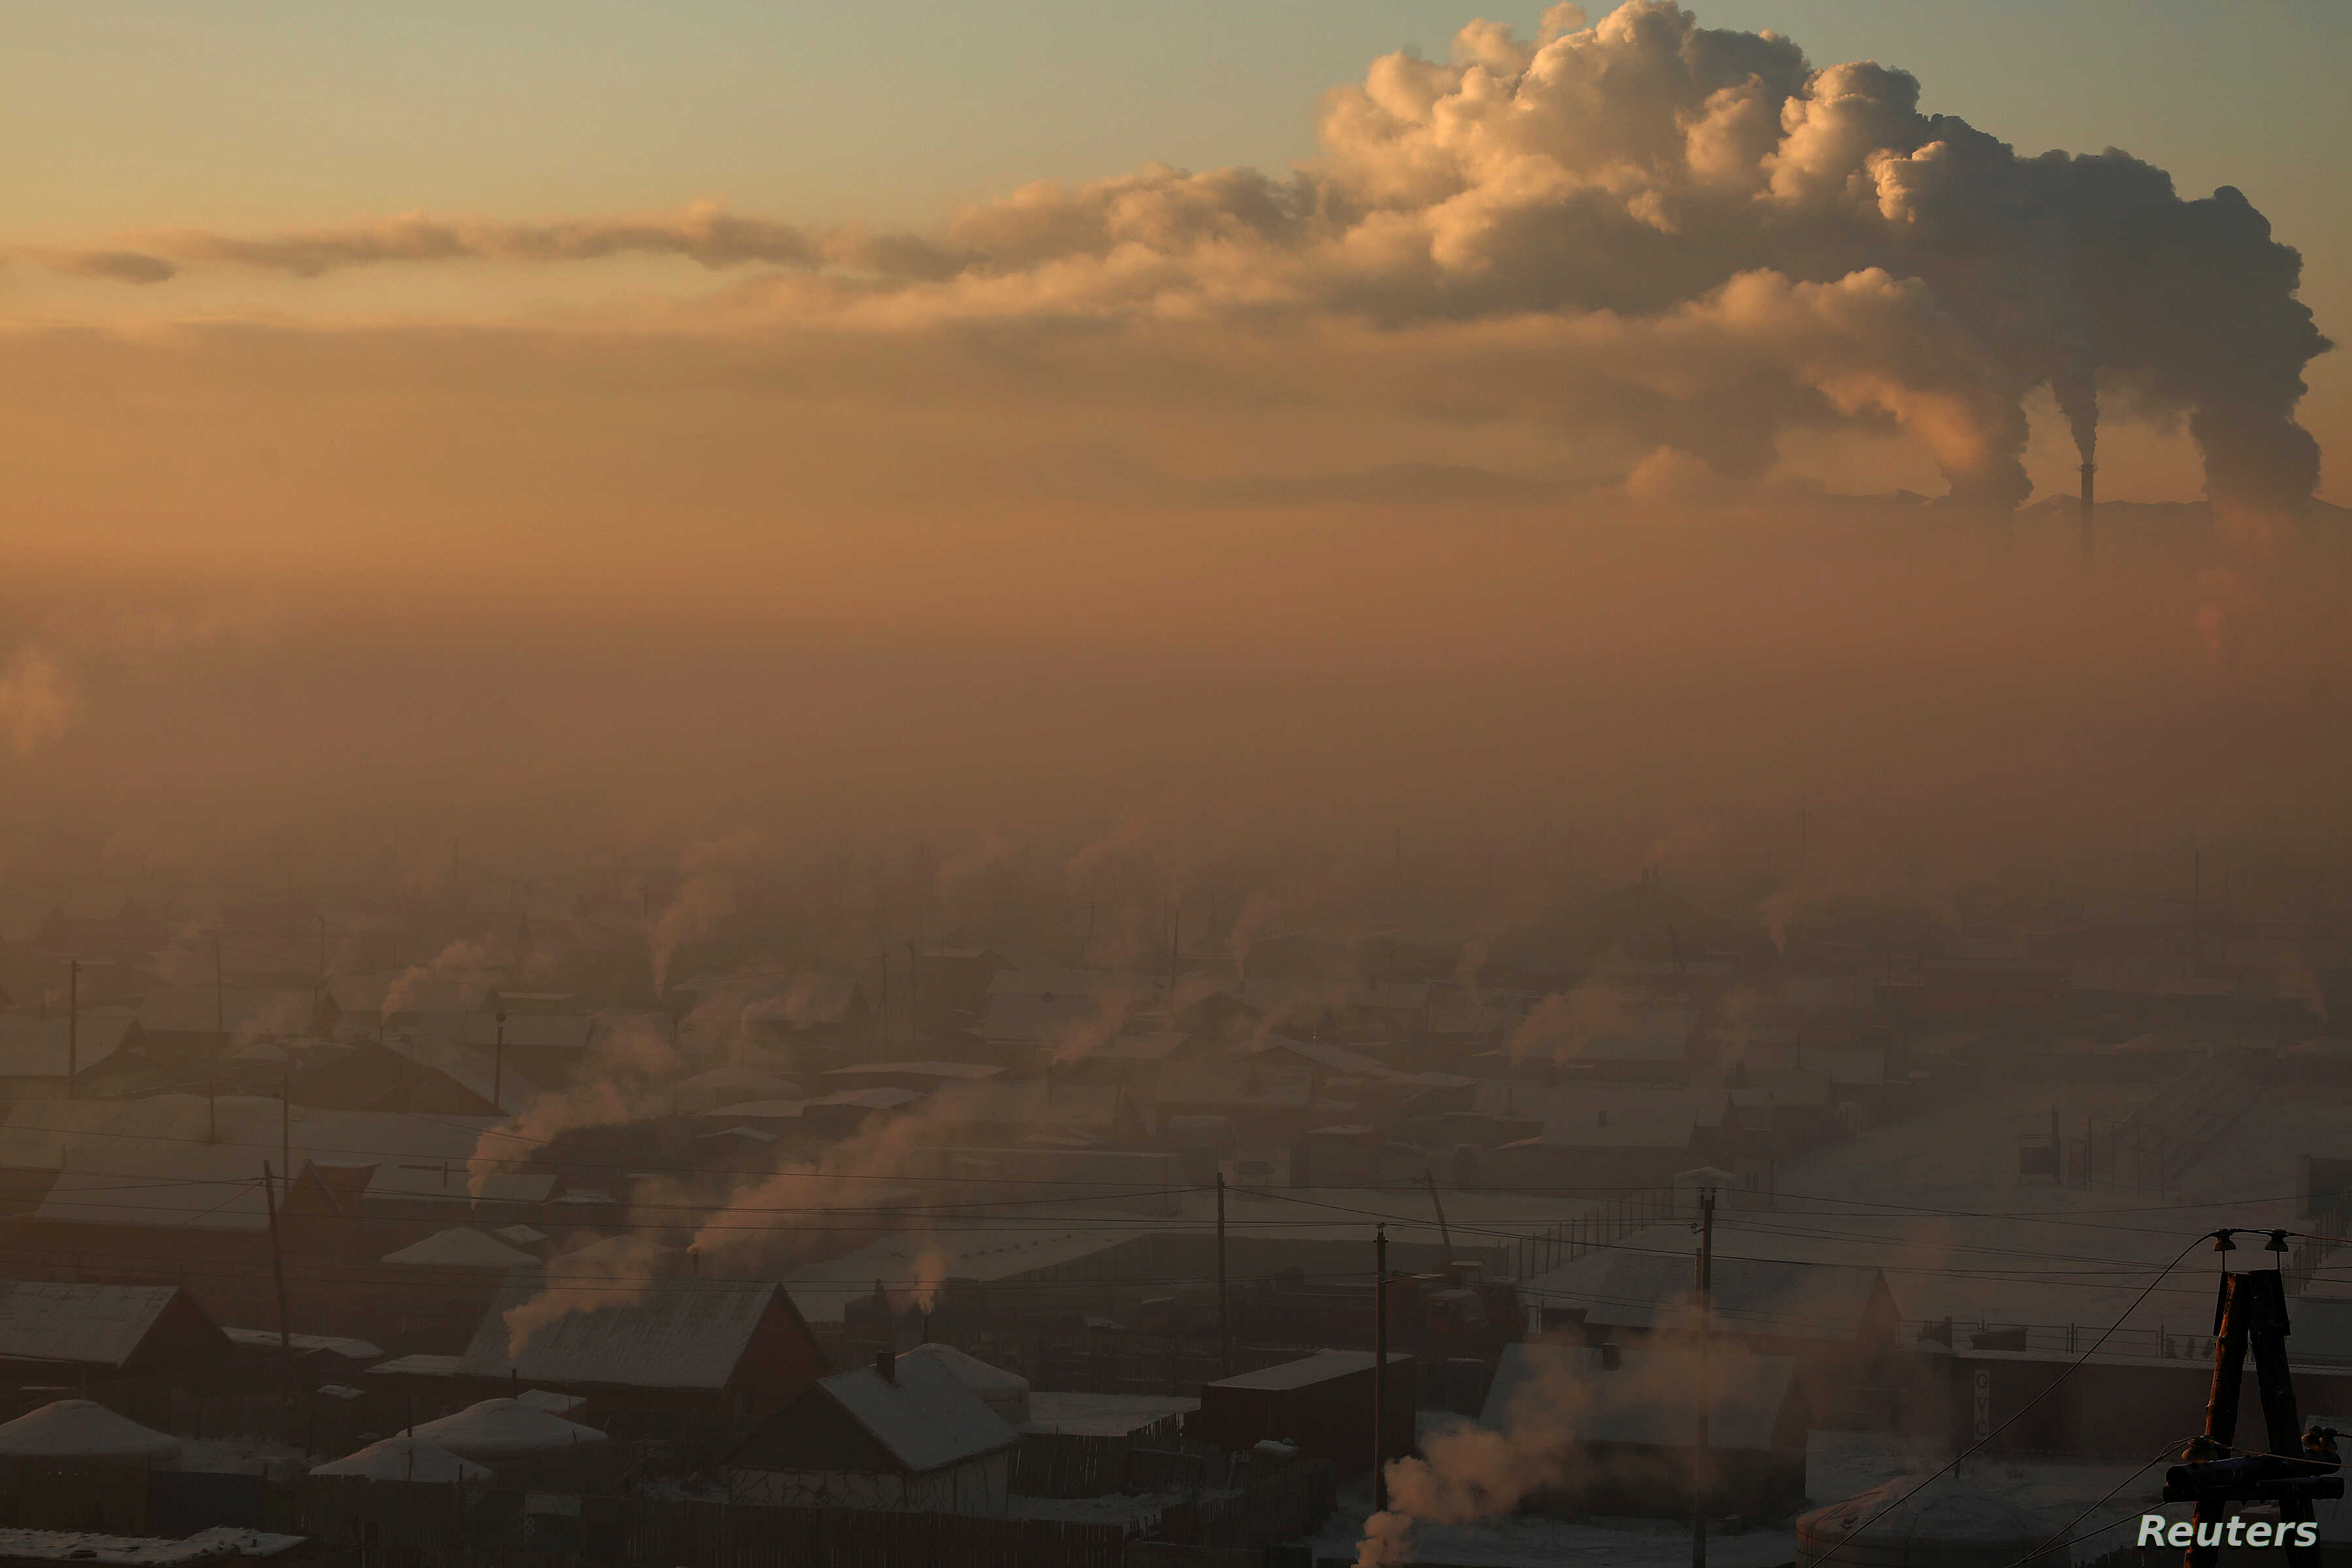 Power plant chimneys stand behind a coal burning neighborhood covered in a thick haze on the outskirts of Ulaanbaatar, Mongolia, Jan. 19, 2017.